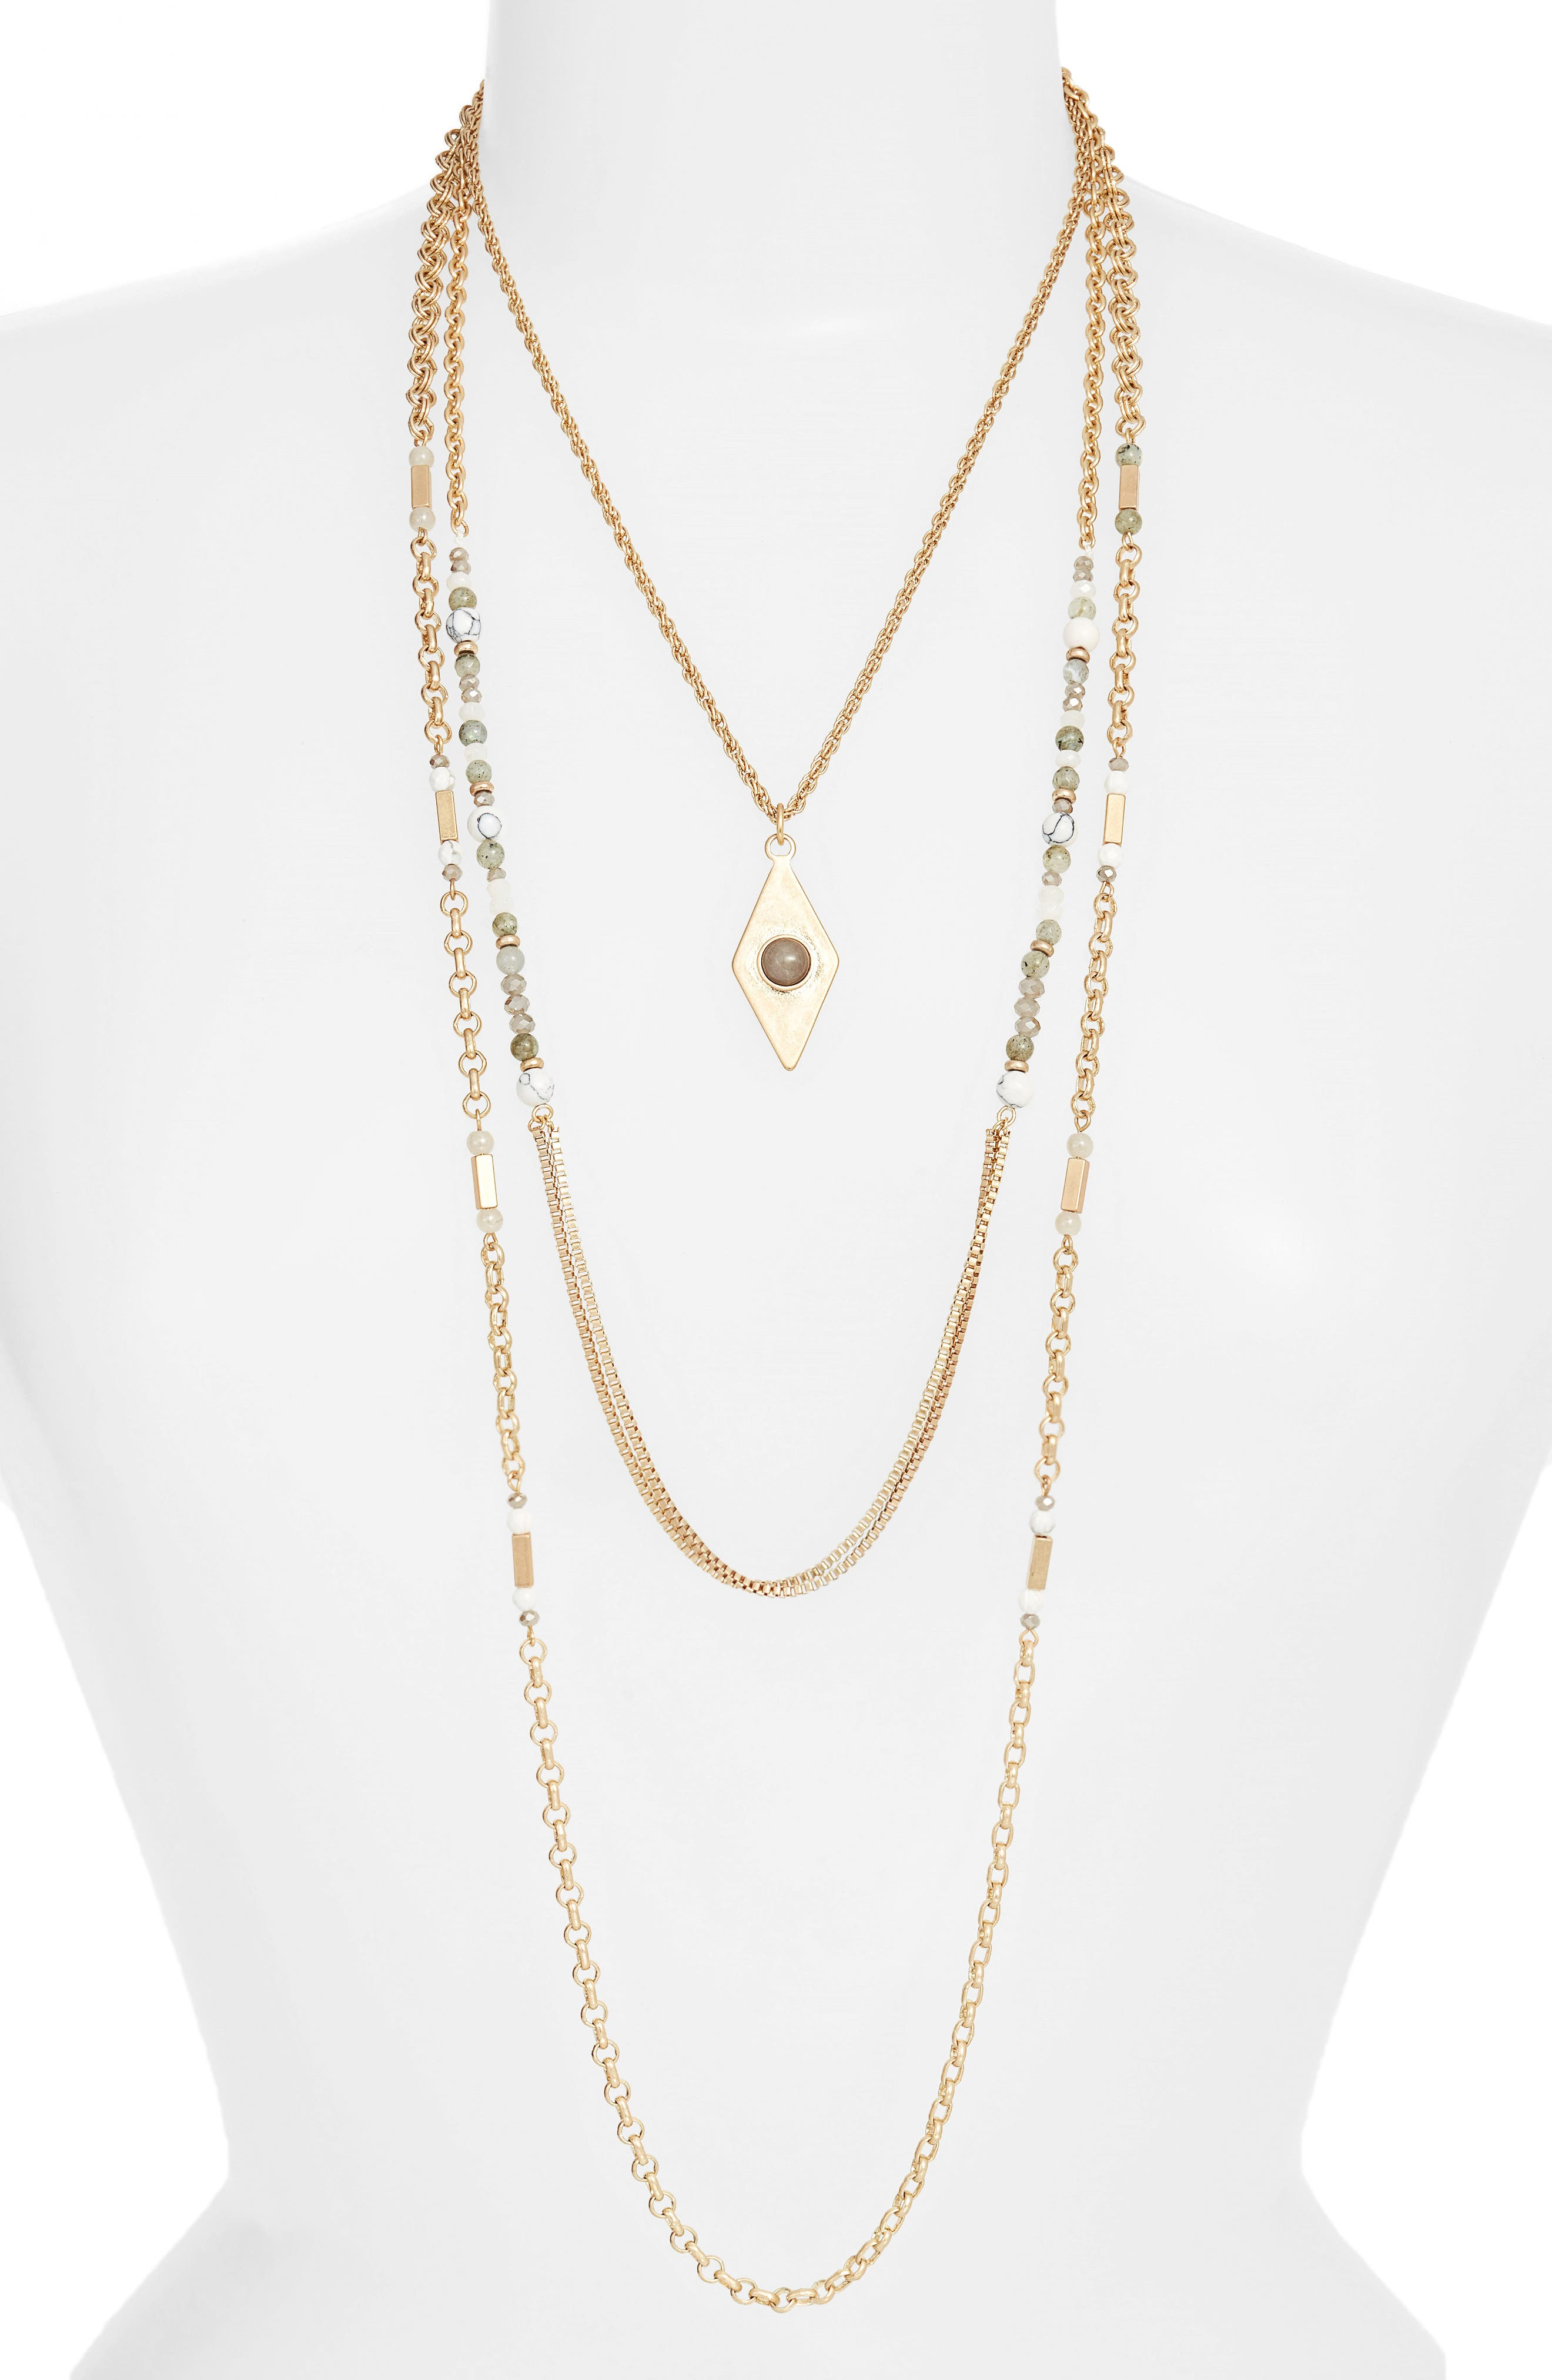 Multistrand Necklace,                             Main thumbnail 1, color,                             Grey- Gold